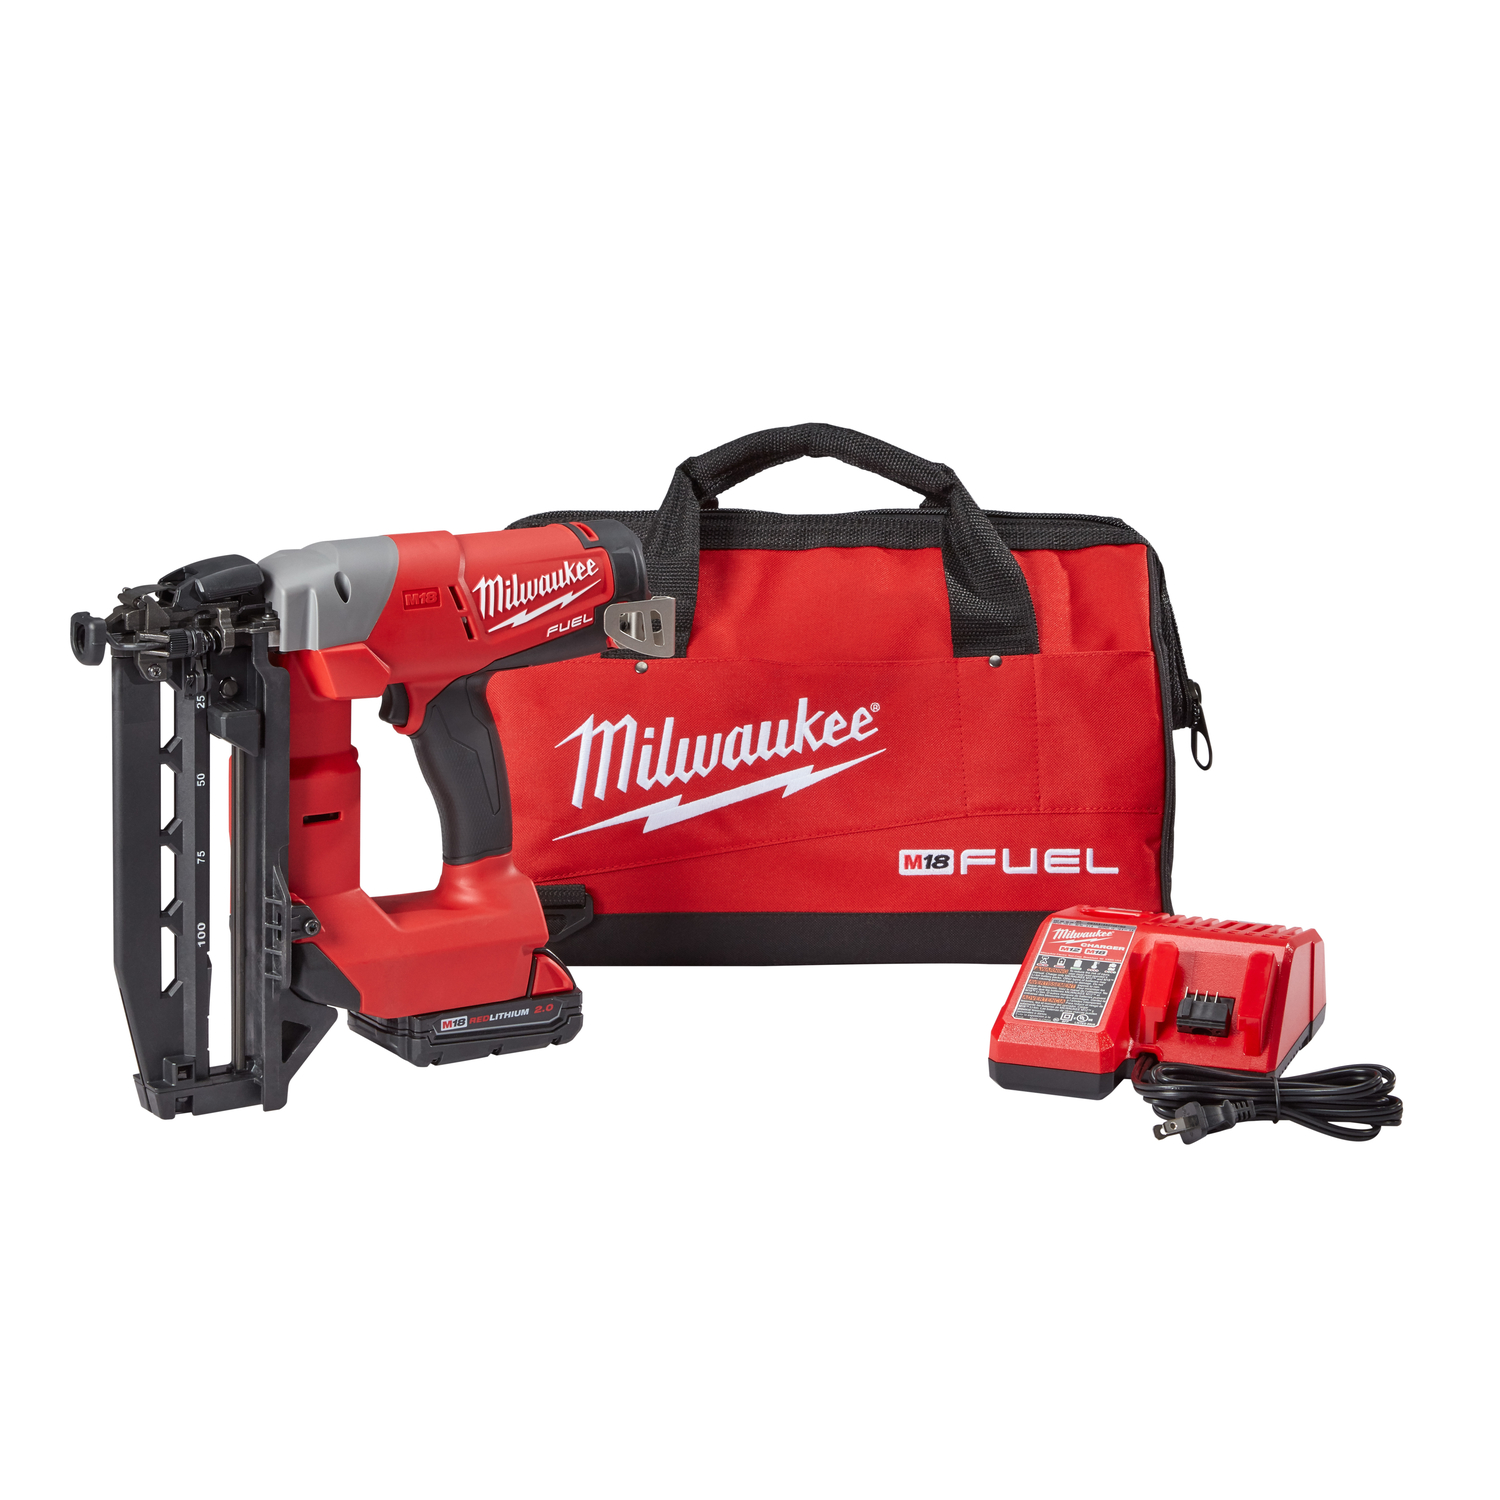 Milwaukee  M18 FUEL  16 Ga. 90 deg. Finish Nailer  Finish Nailer  18 volts Kit